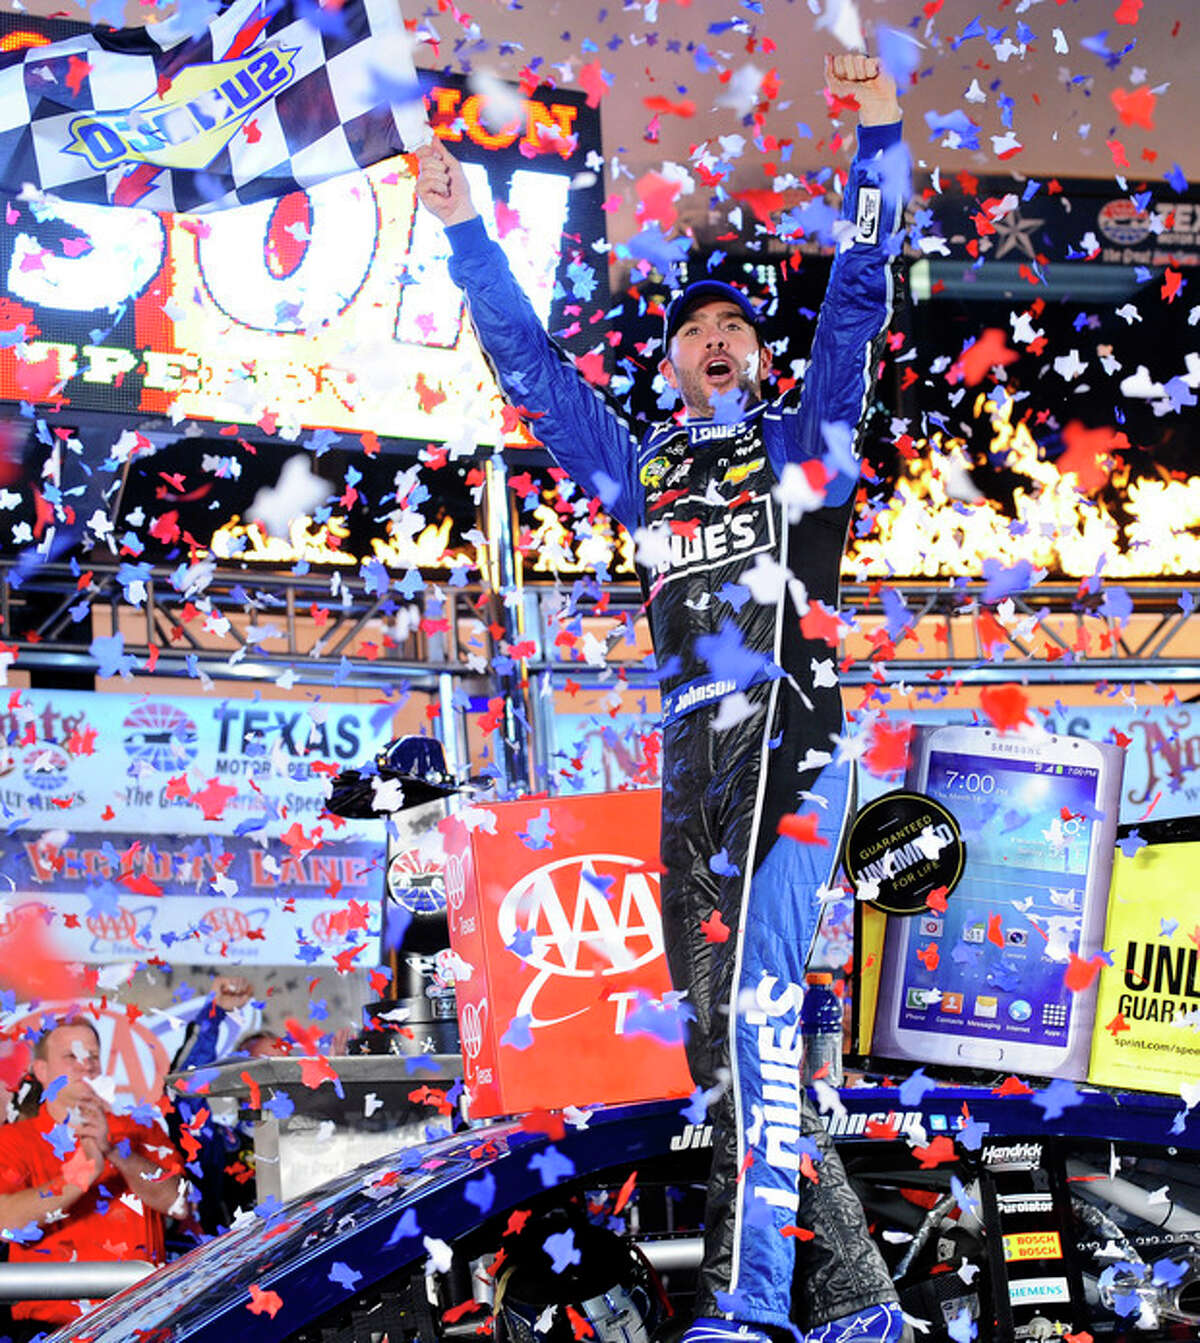 Jimmie Johnson (48) celebrates winning the NASCAR Sprint Cup series auto race at Texas Motor Speedway in Fort Worth, Texas, Sunday, Nov. 3, 2013. (AP Photo/Ralph Lauer)